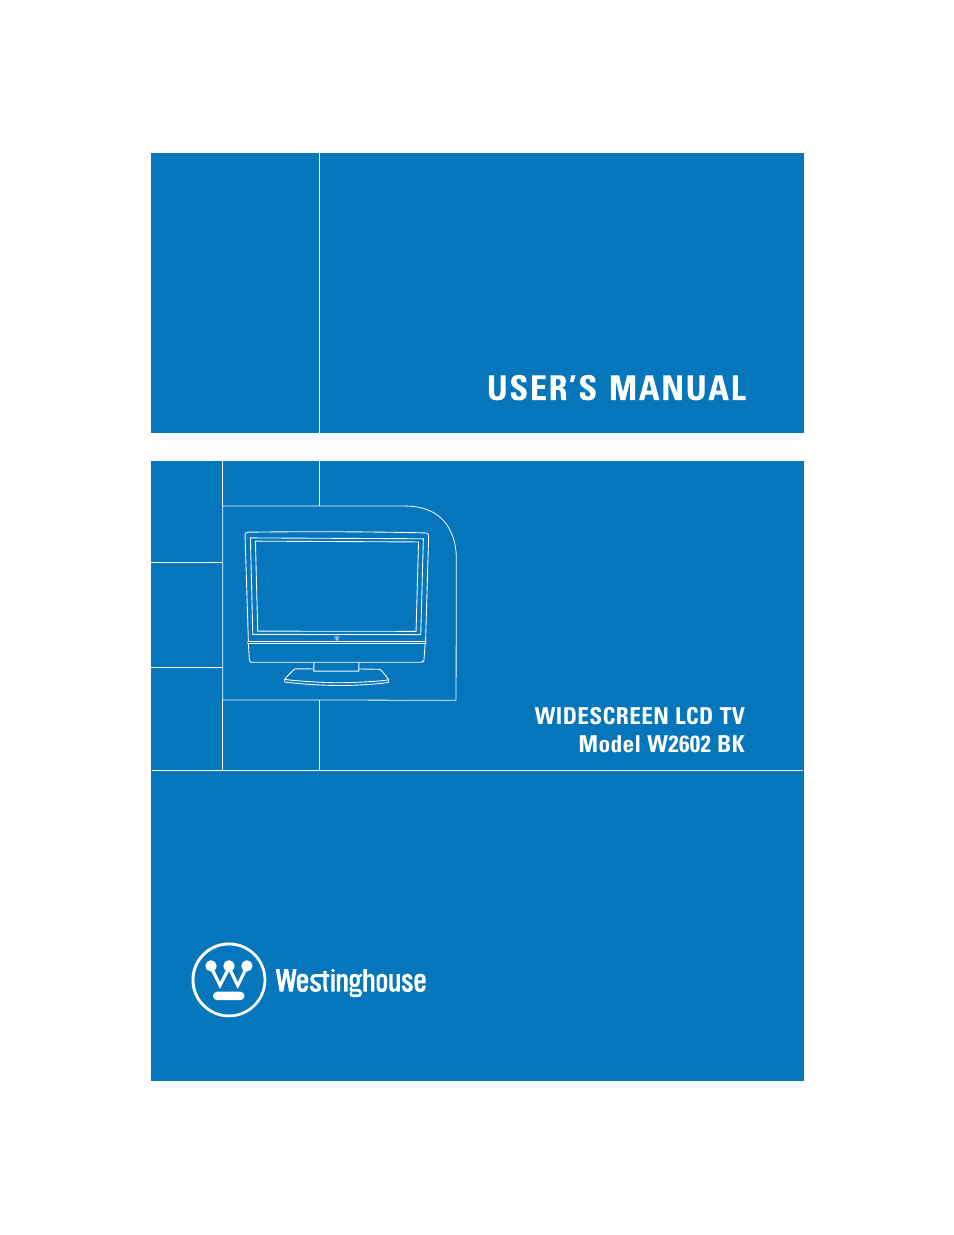 Westinghouse W2602 BK User Manual | 26 pages